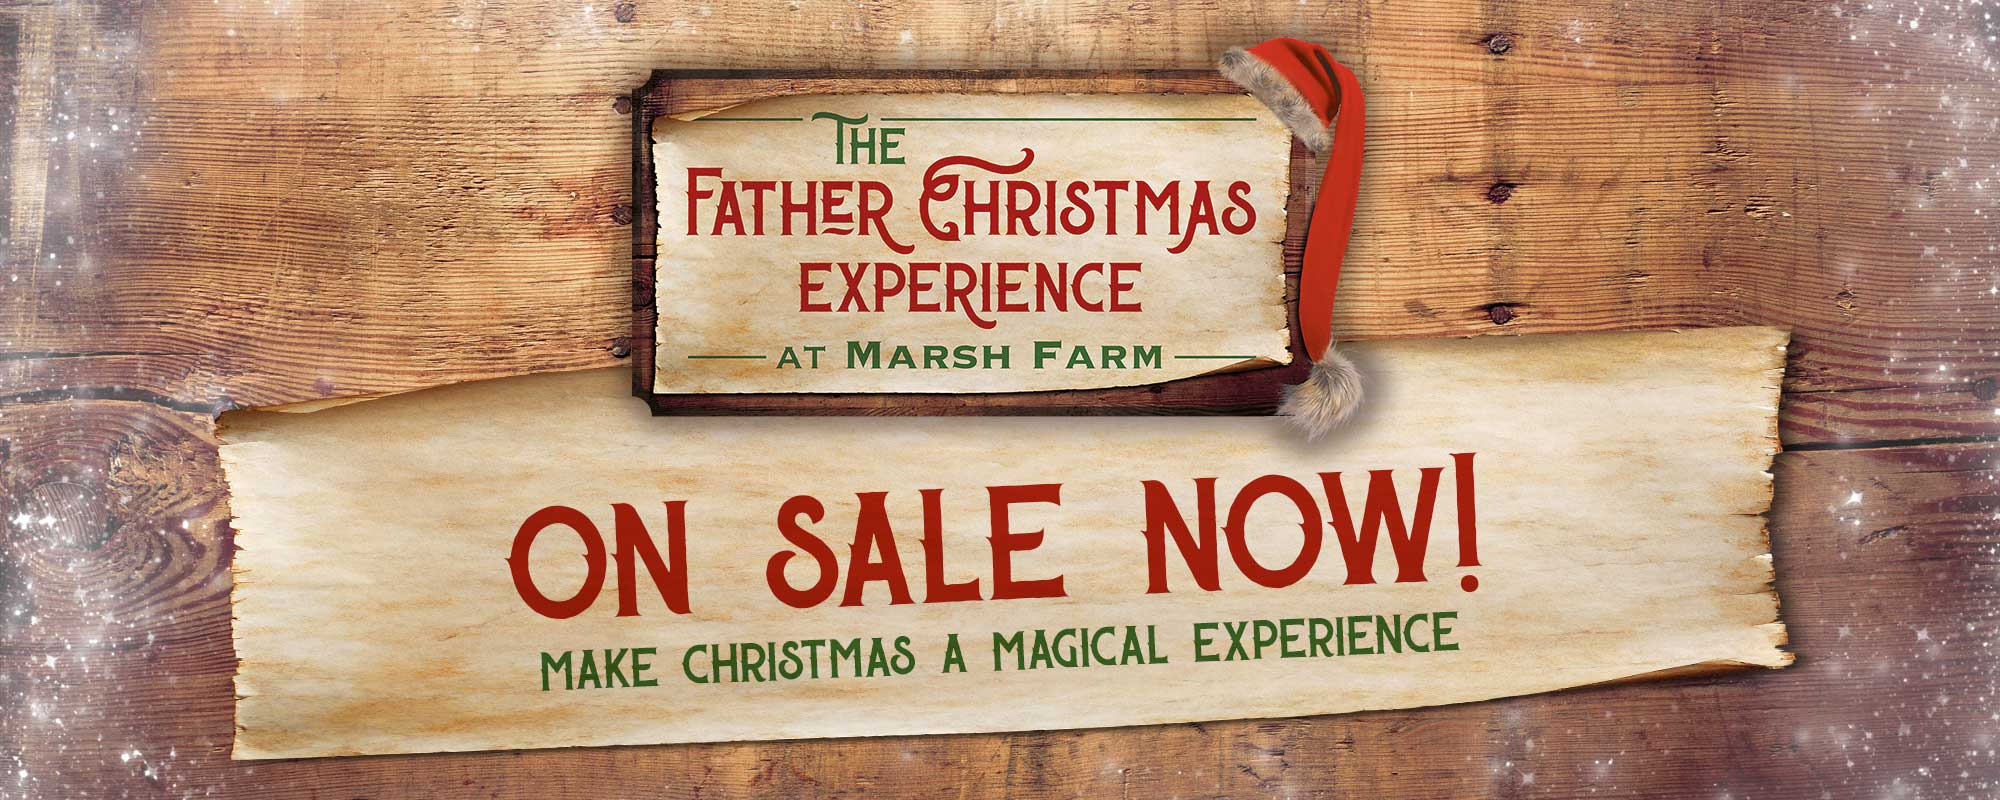 Christmas Experience on sale now!